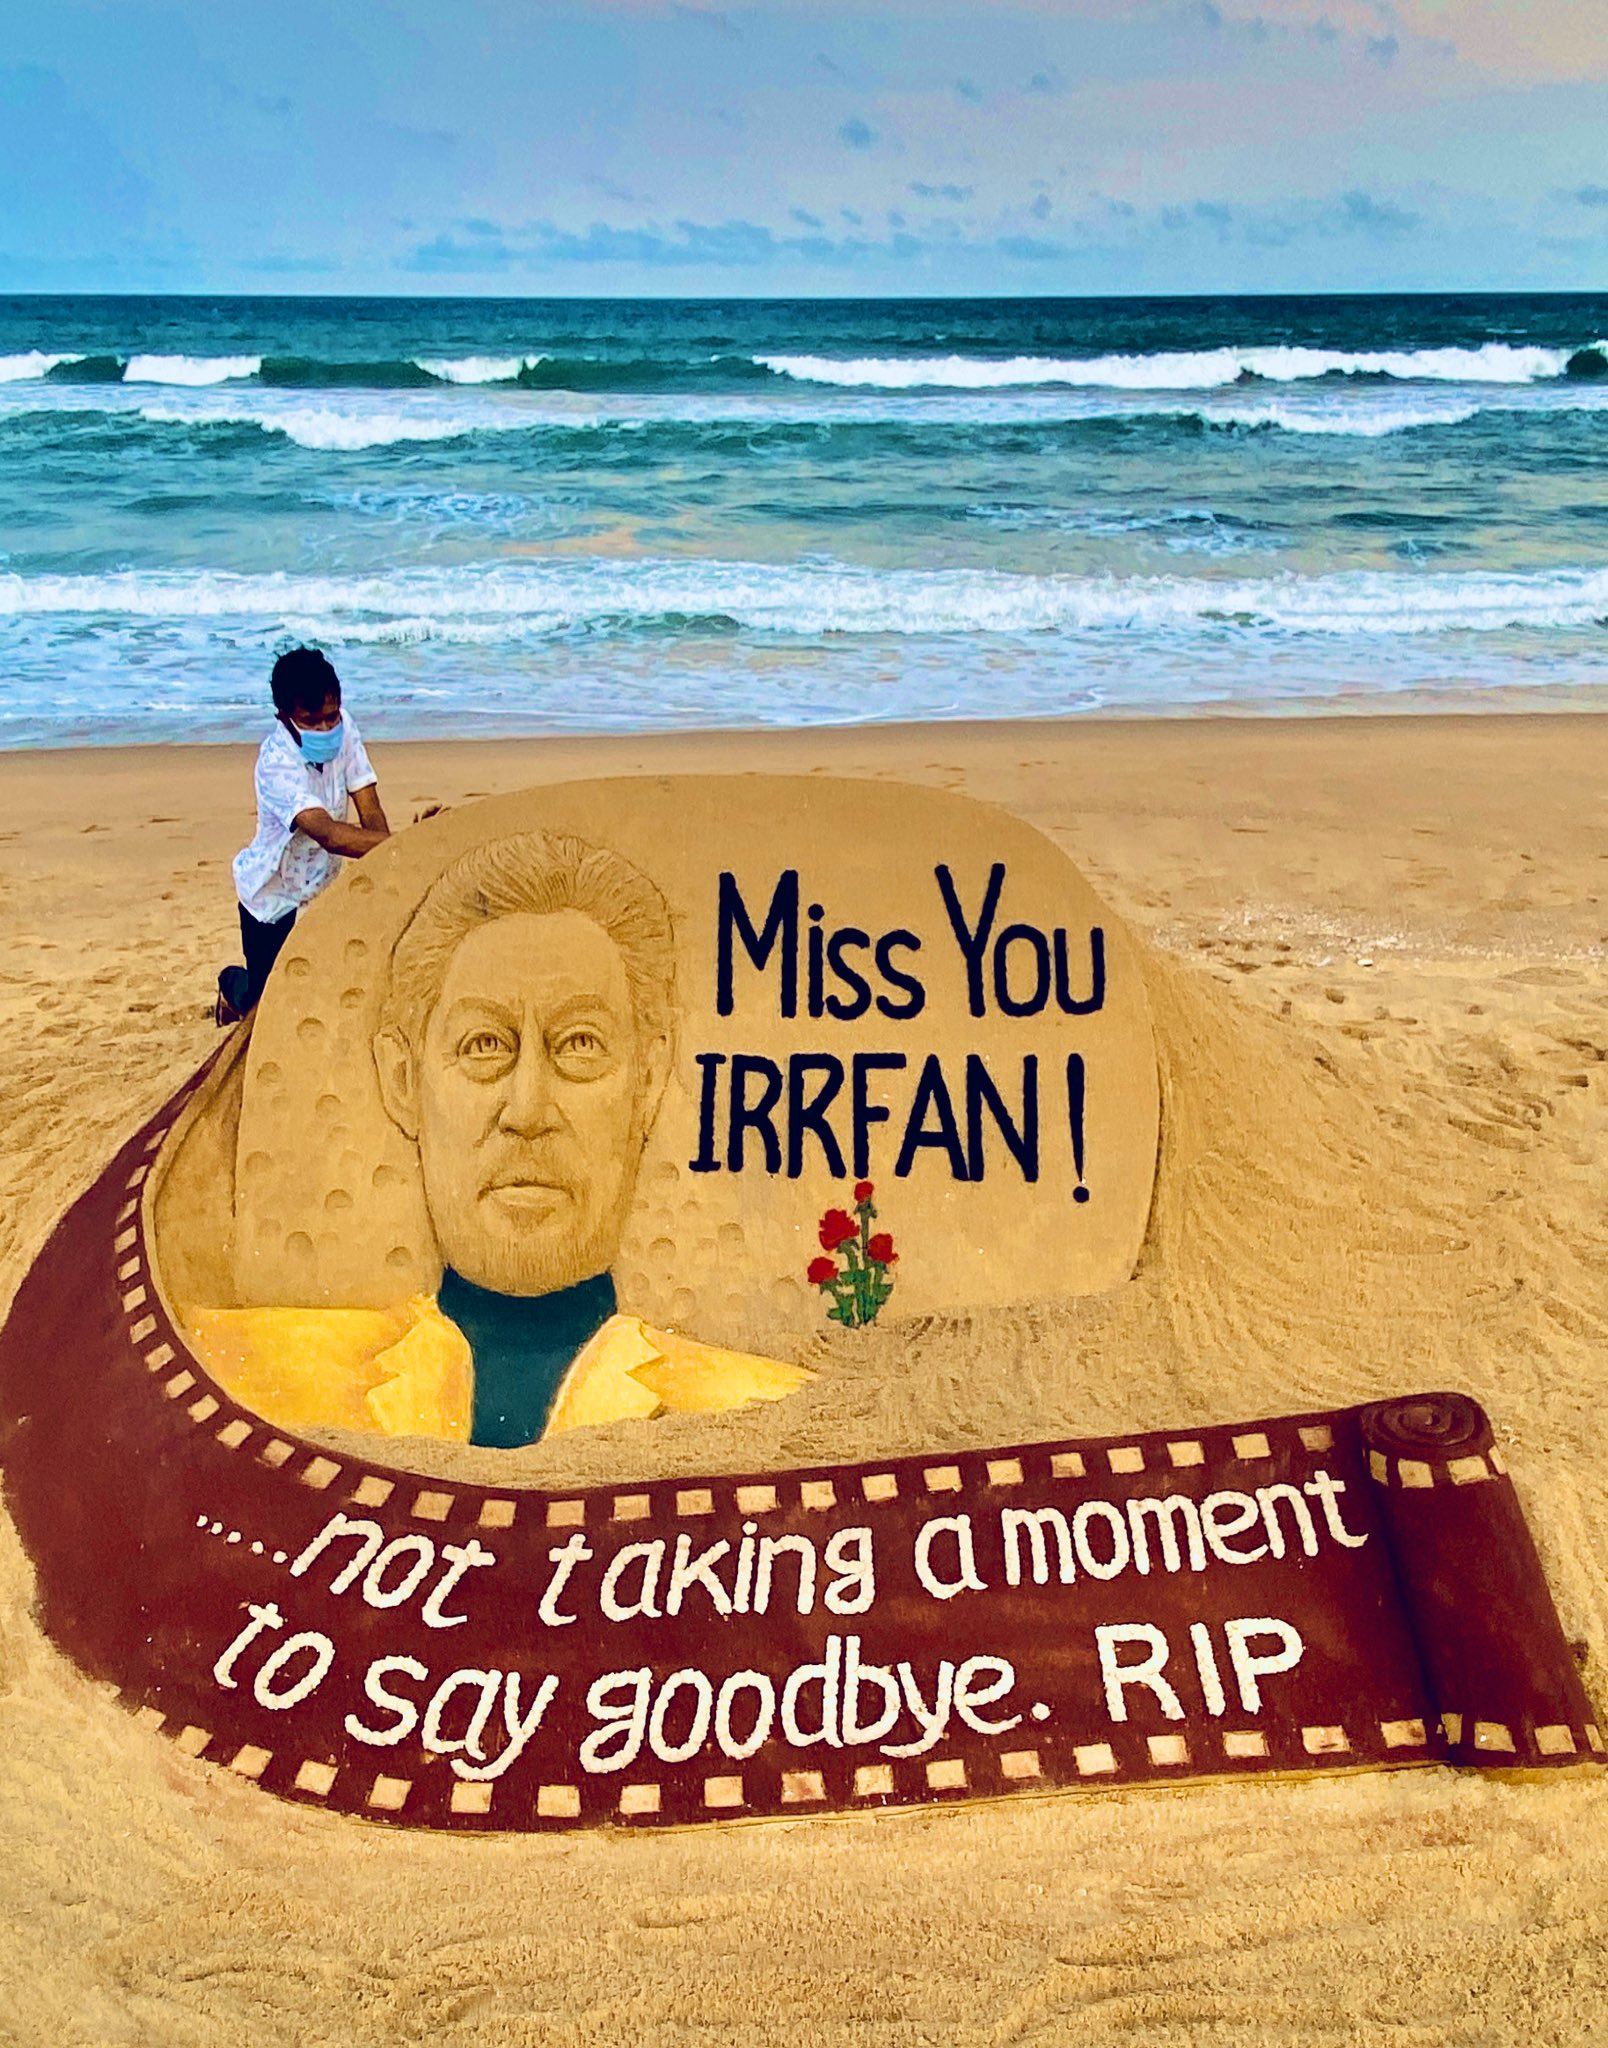 Renowned sand artist Sudarsan Pattnaik on Wednesday gave a 'Sandy Tribute' to Actor Irrfan Khan